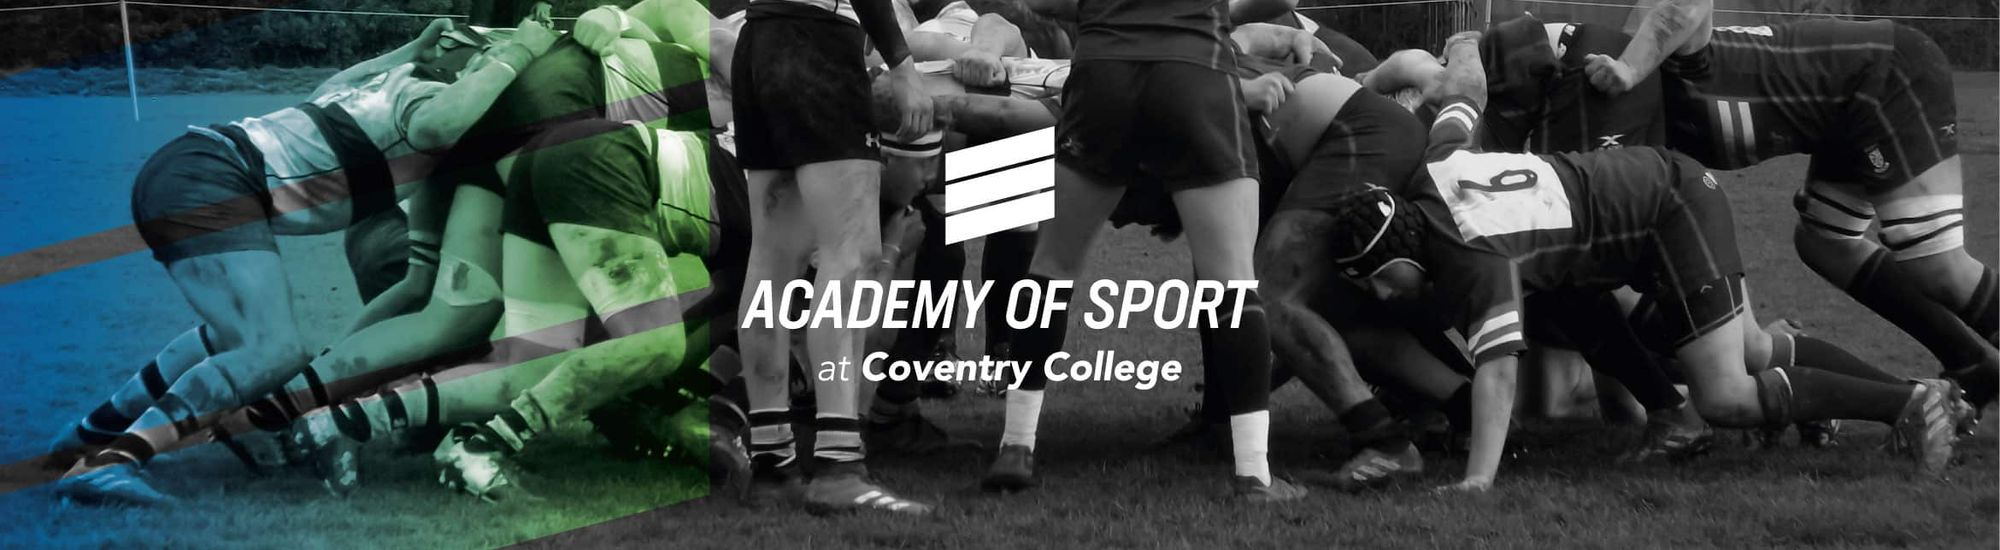 Coventry College Academy of Sport logo